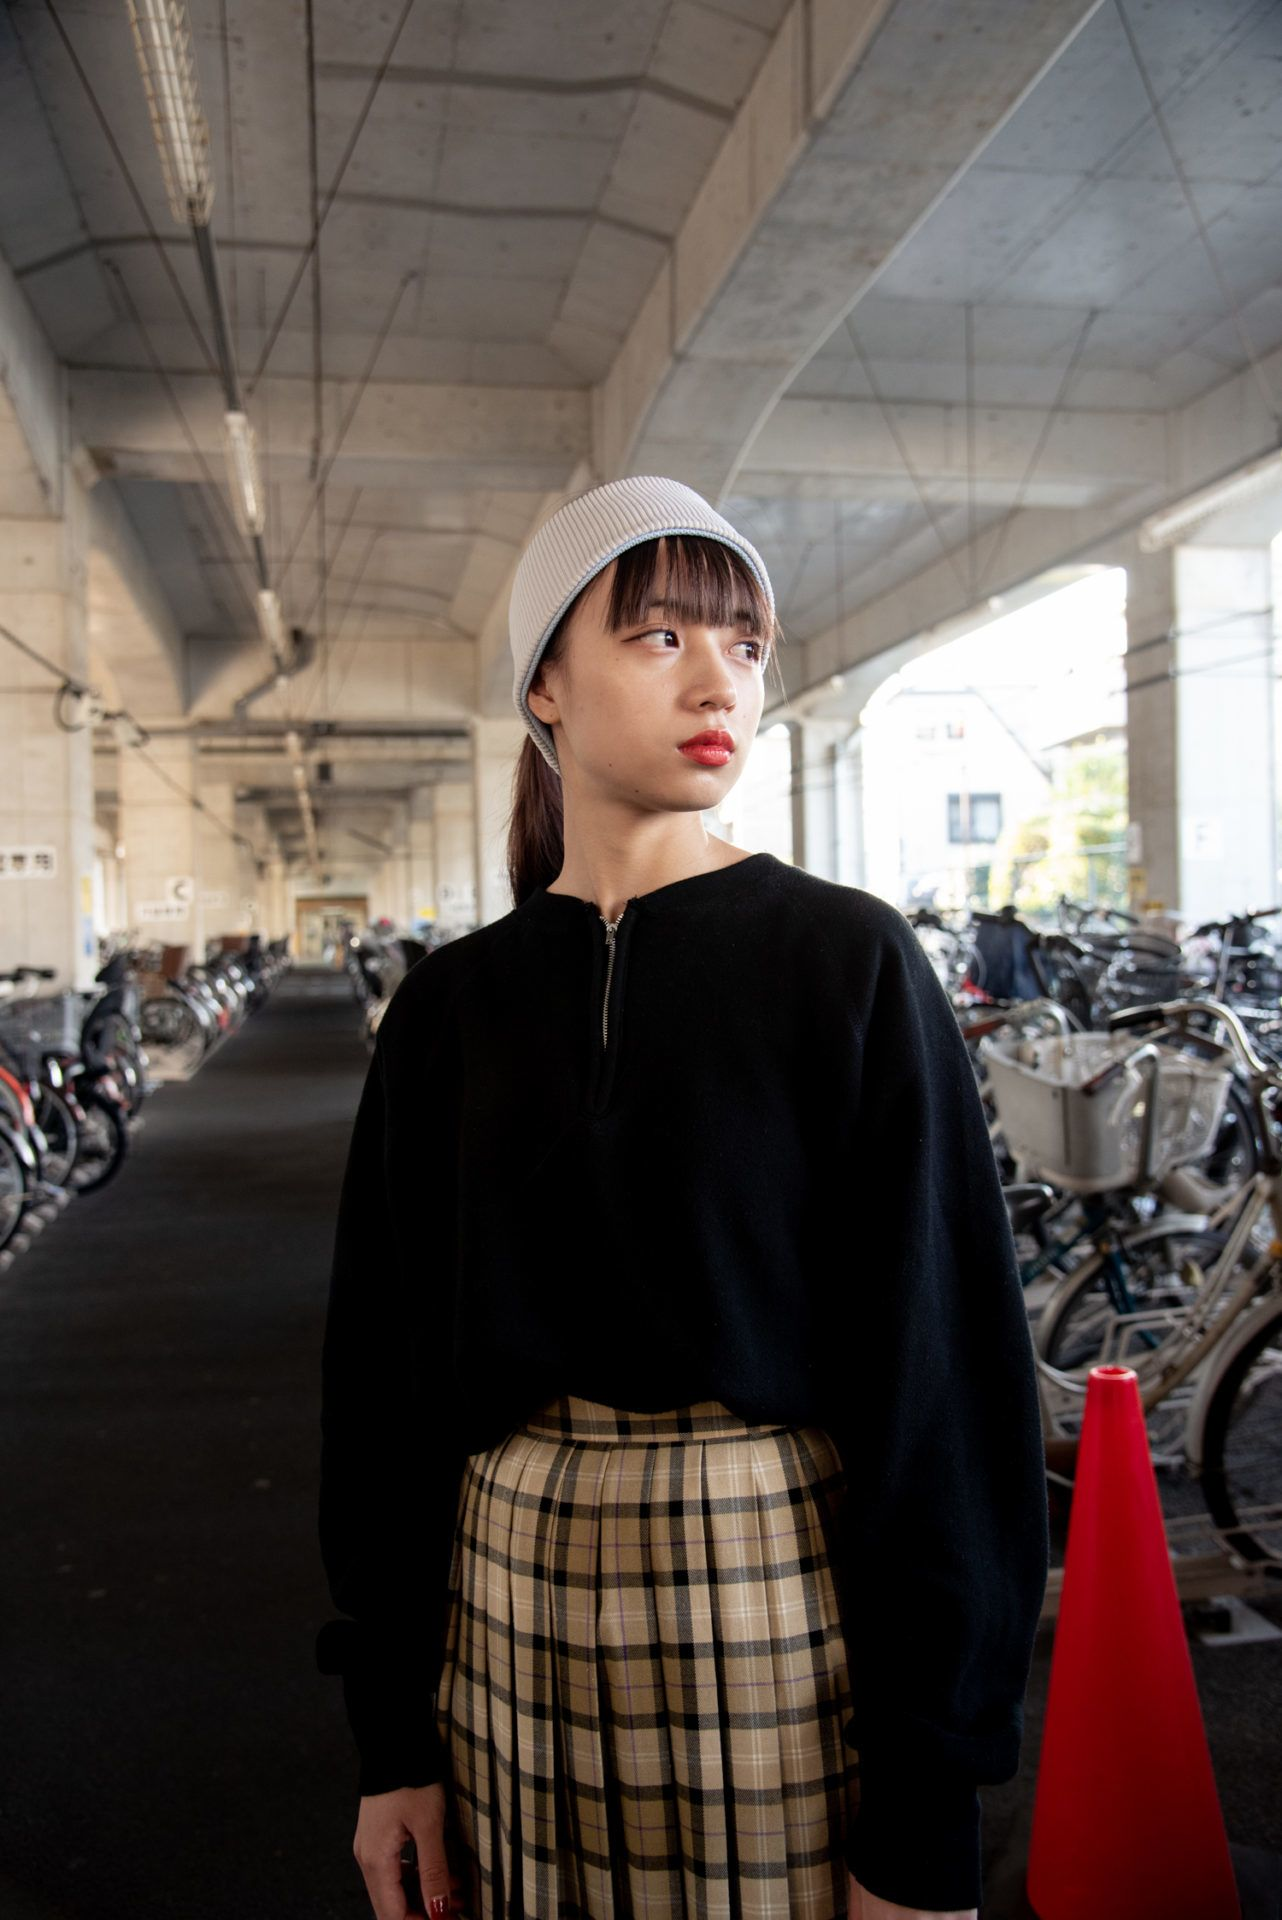 Girls On The Street Nov. 2019 – 彩音 vol. 4 –